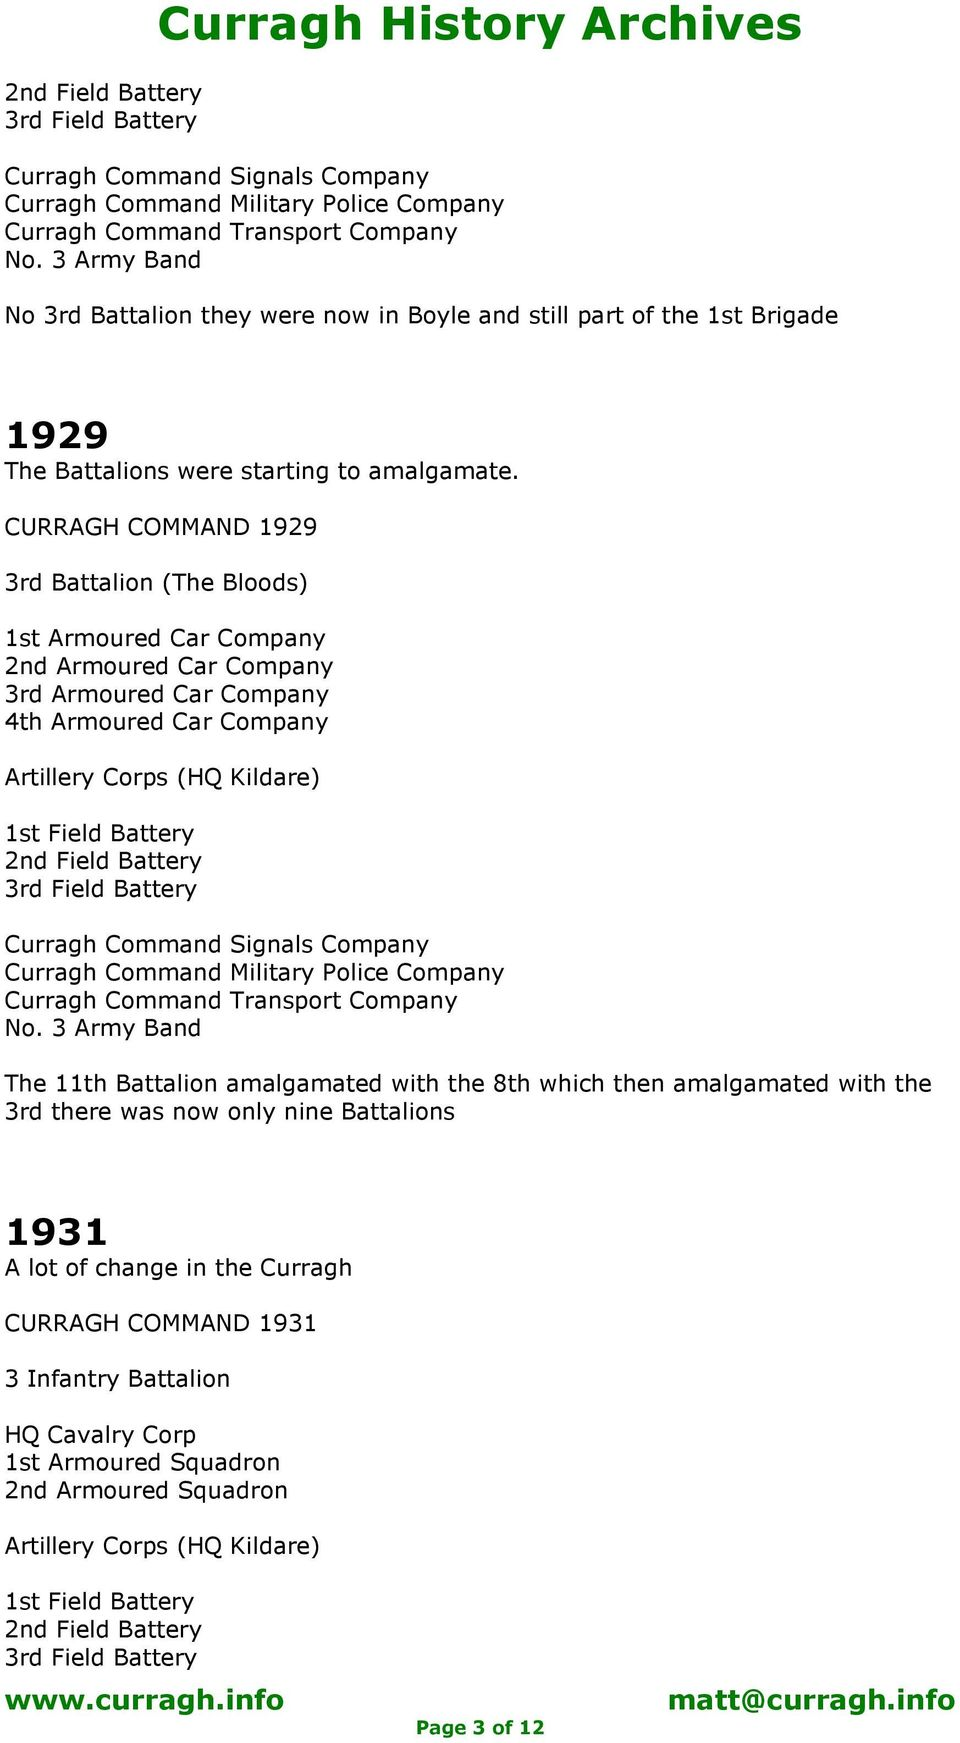 CURRAGH COMMAND 1929 3rd Battalion (The Bloods) 1st Armoured Car Company 2nd Armoured Car Company 3rd Armoured Car Company 4th Armoured Car Company Artillery Corps (HQ Kildare) 1st Field Battery 2nd